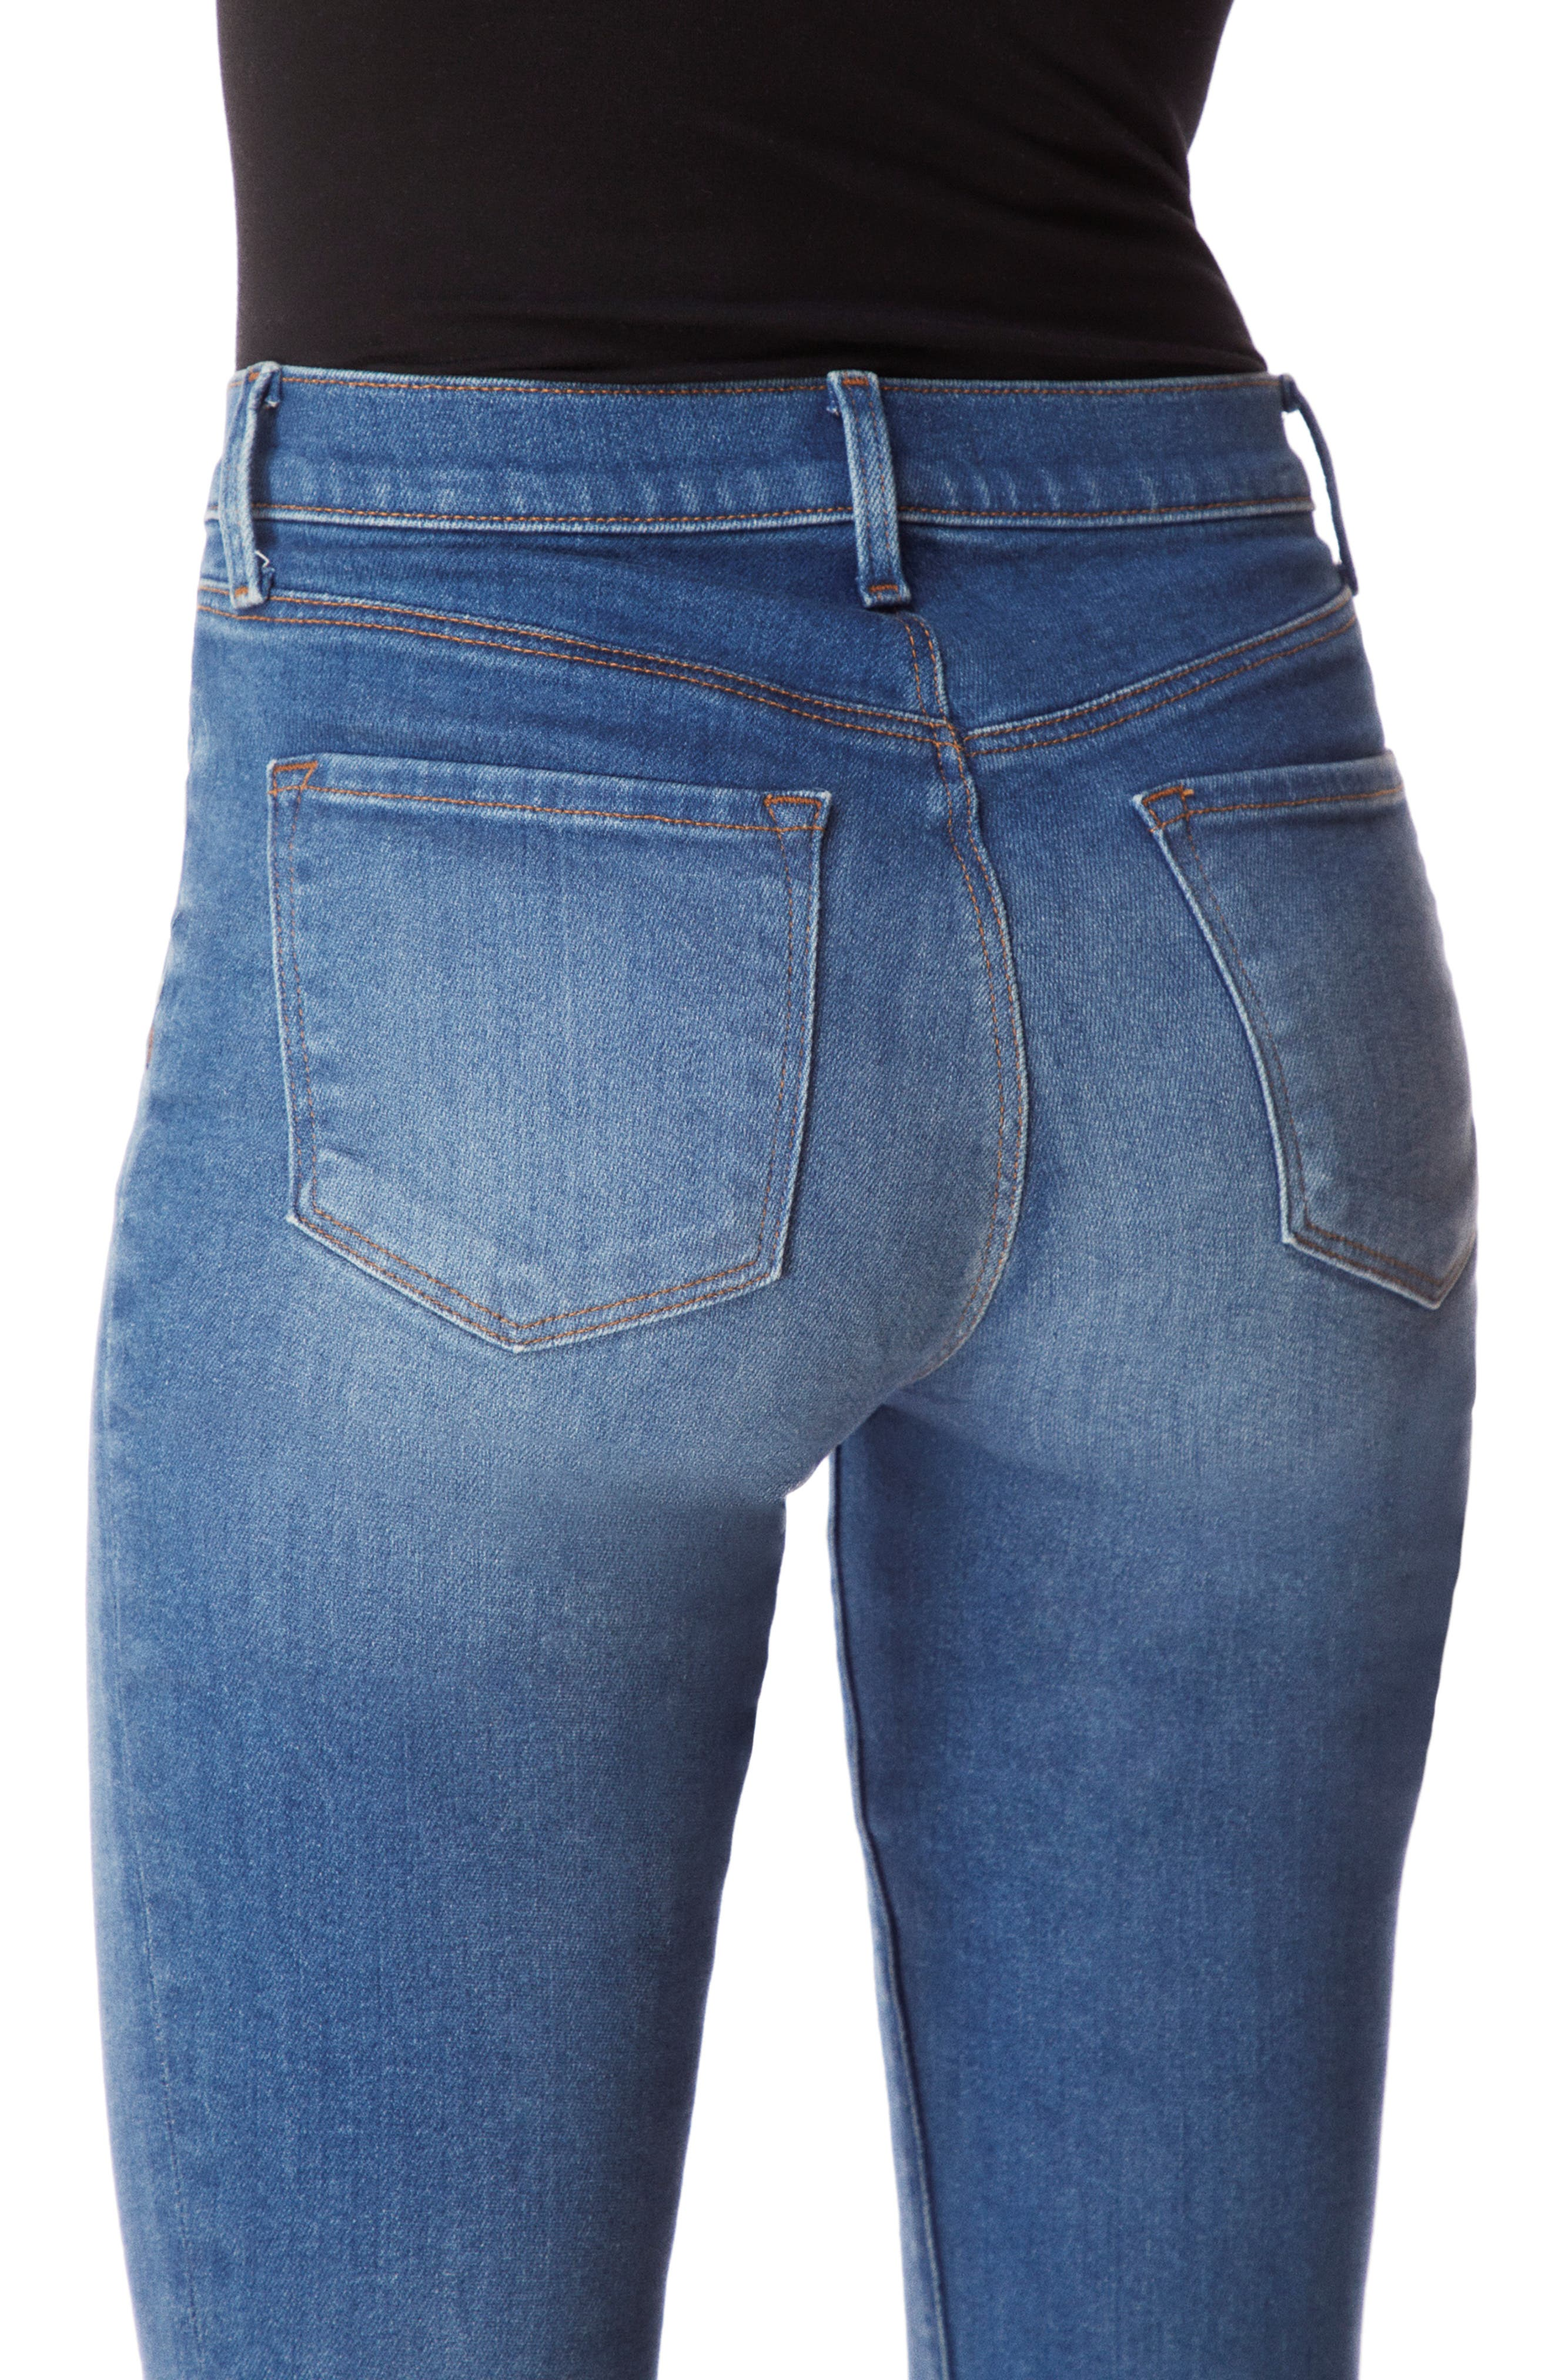 Alana High Waist Crop Skinny Jeans,                             Alternate thumbnail 4, color,                             RADIATE